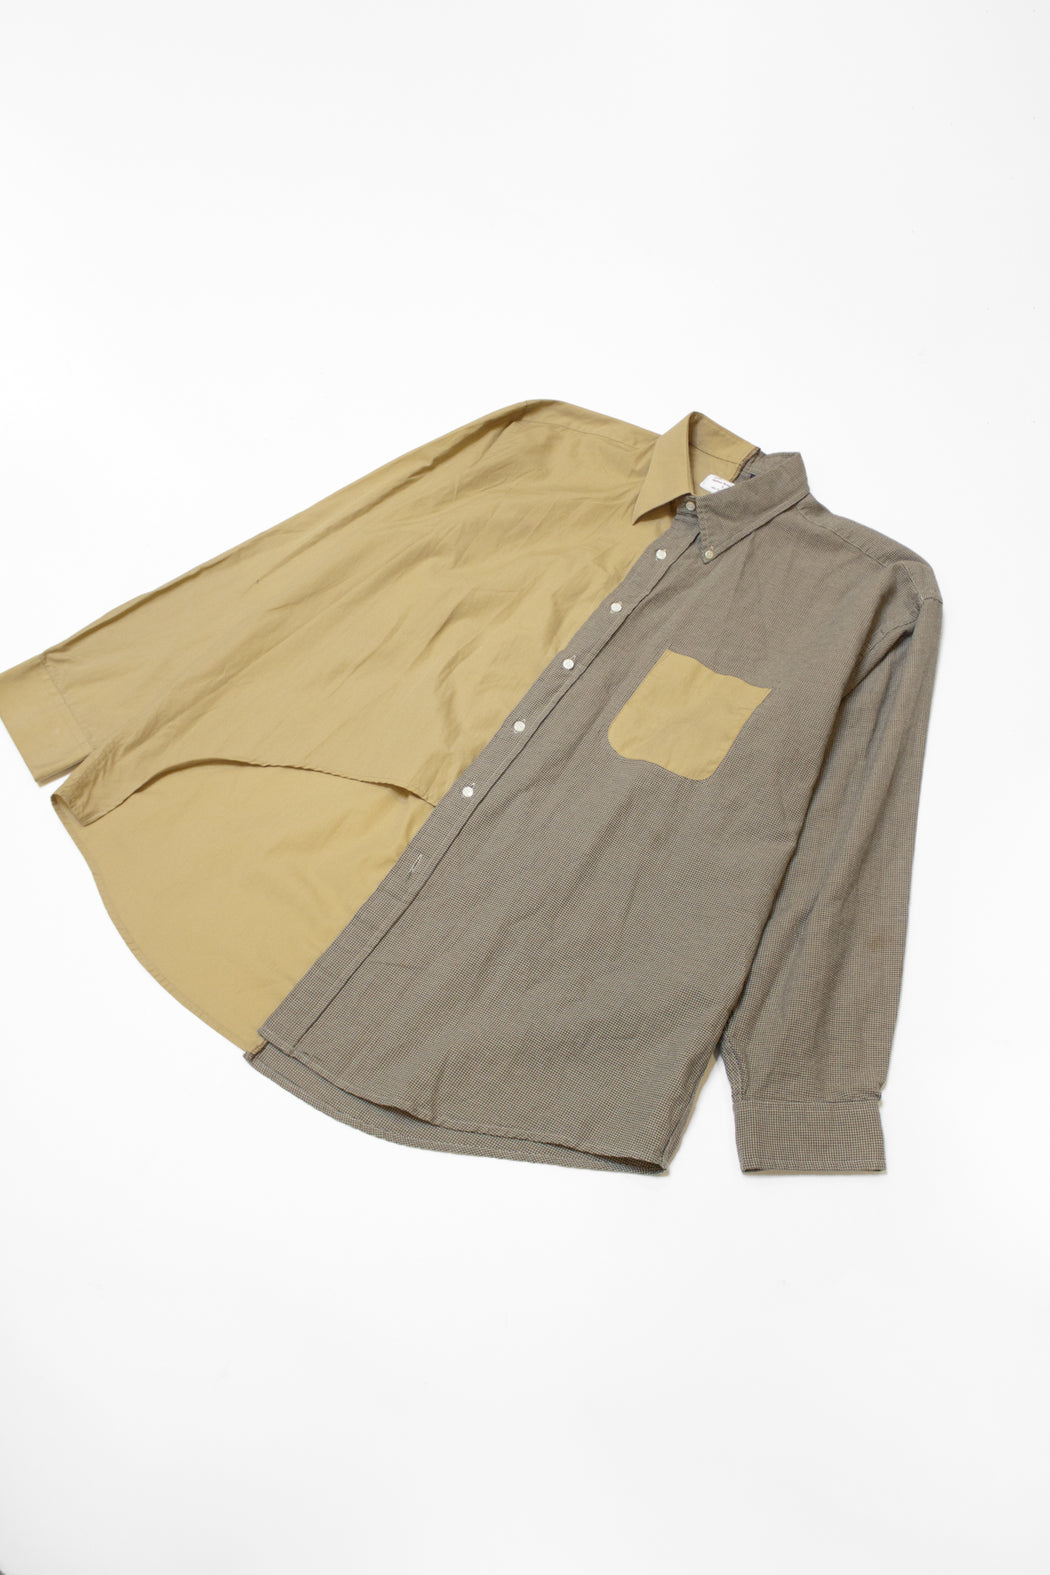 Re-Worked 2-Tone Button-Up | No. 10